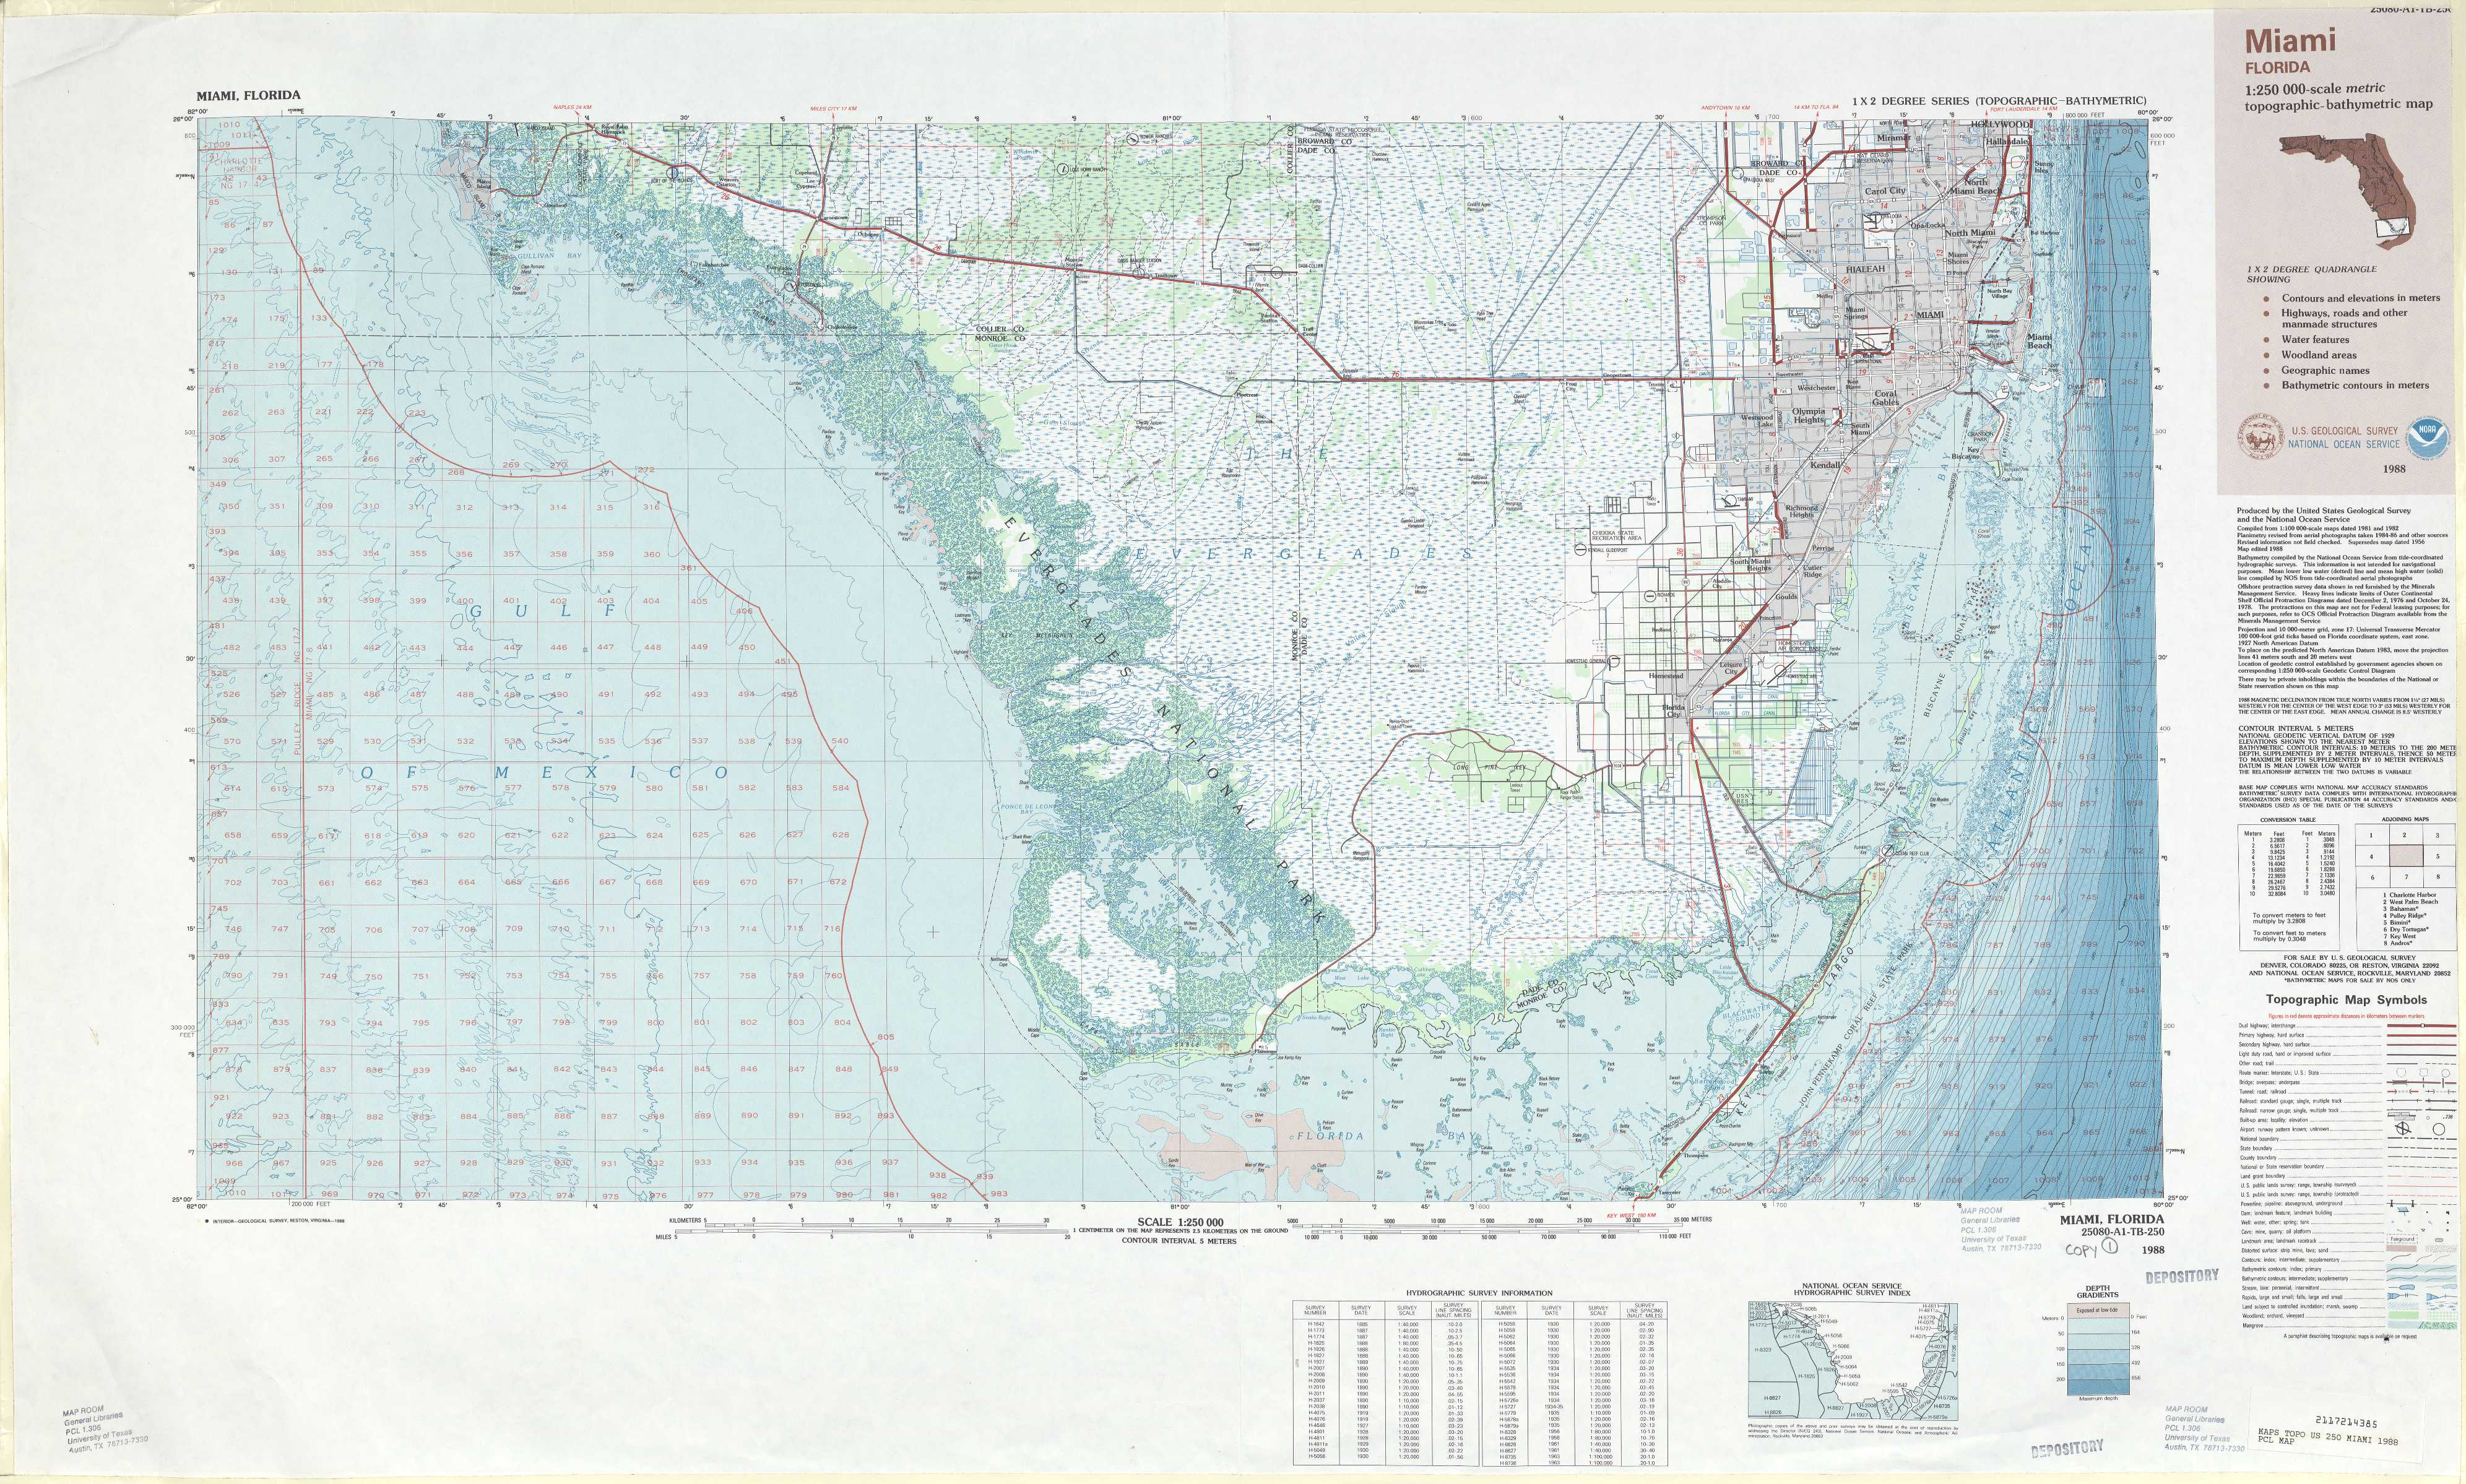 Miami Topographic Maps FL USGS Topo Quad A At Scale - Florida topographic map free